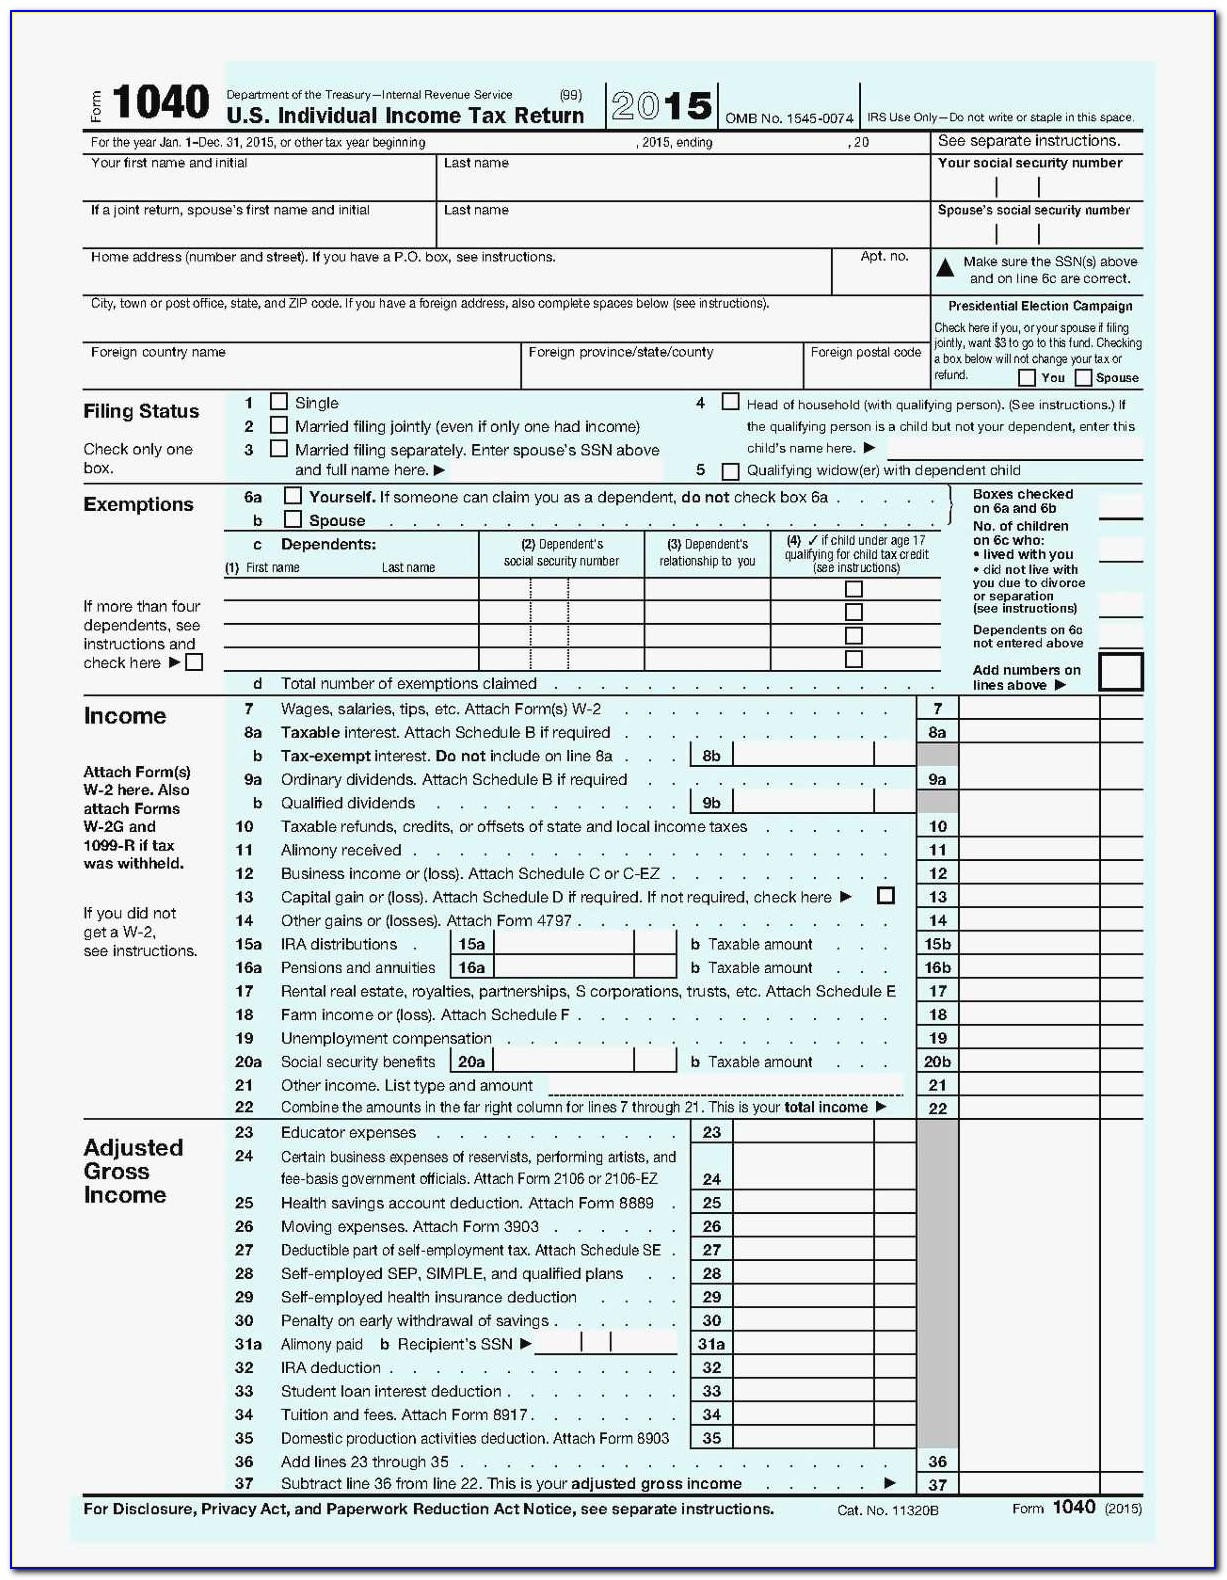 1099 Misc Template 2016 Word New Printable 1099 Misc Form 2016 Fresh Irs Form W 4 Free Download